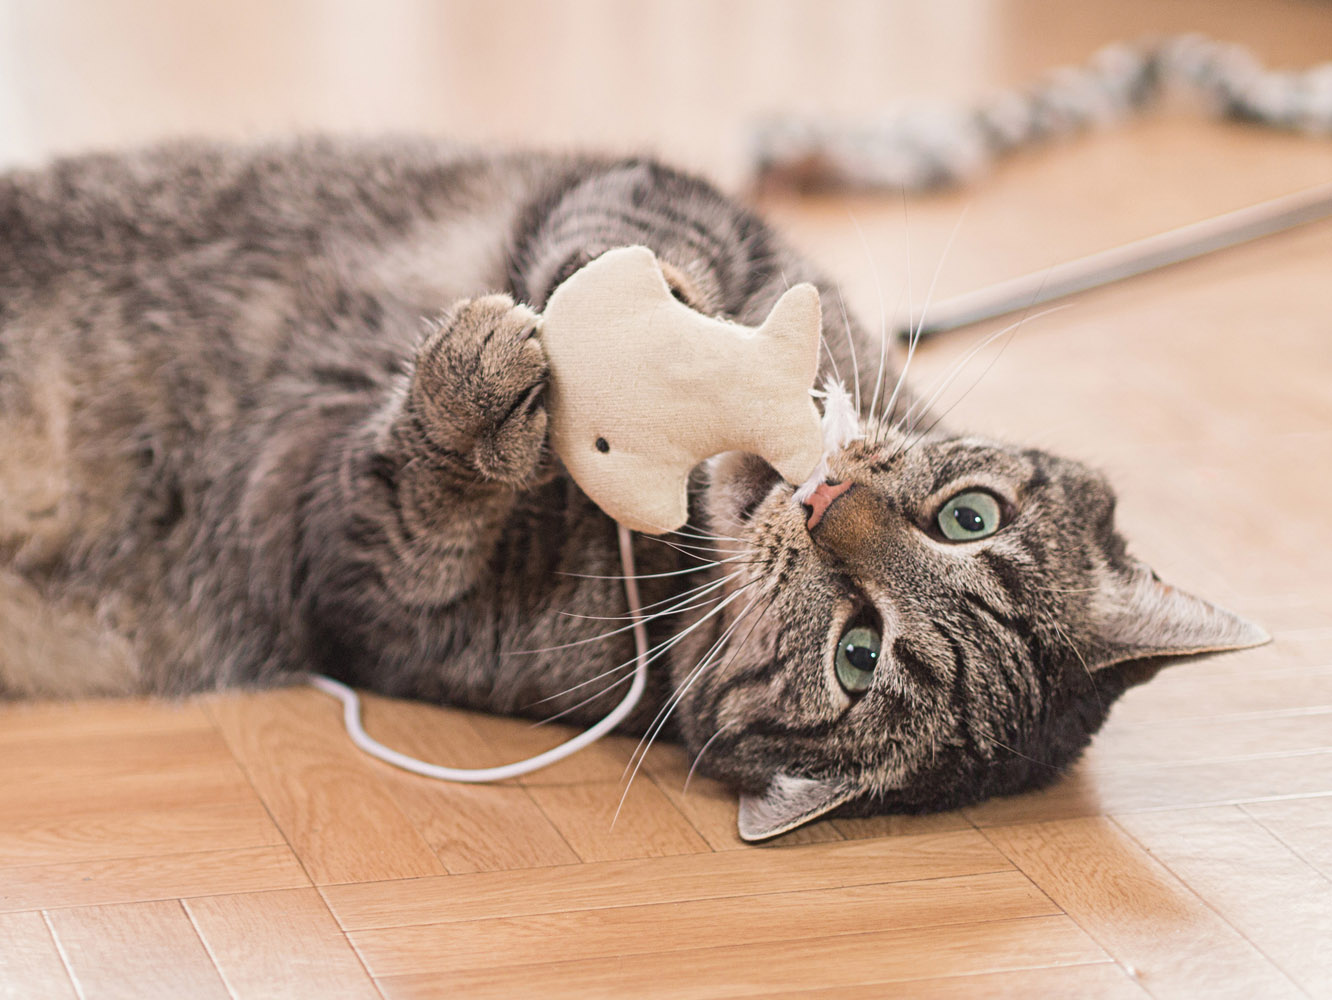 Cat playing with mouse toy